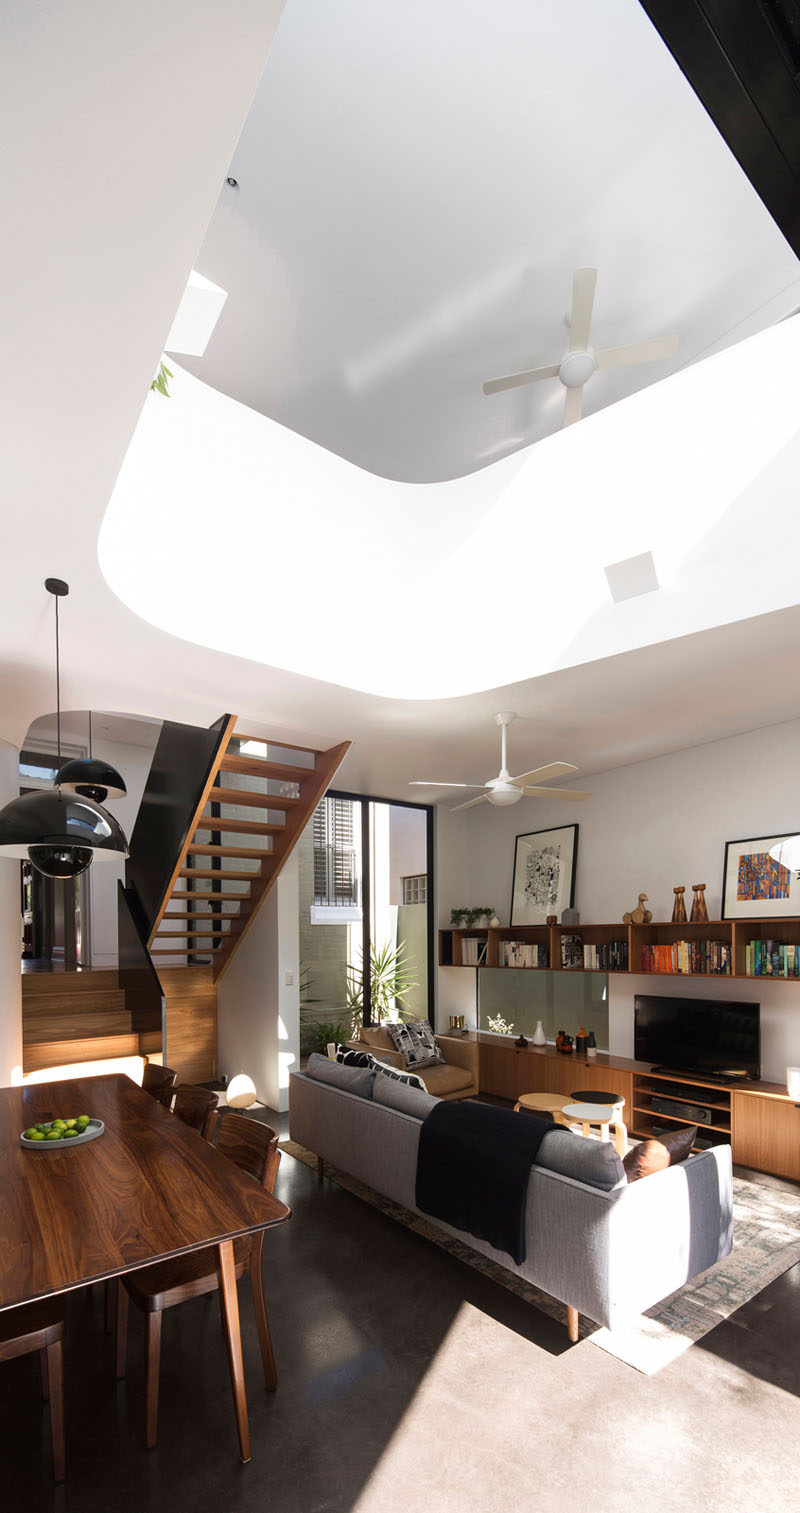 This house extension has a void in the ceiling to reveal the second floor, and to aid in the air ventilation throughout the home.